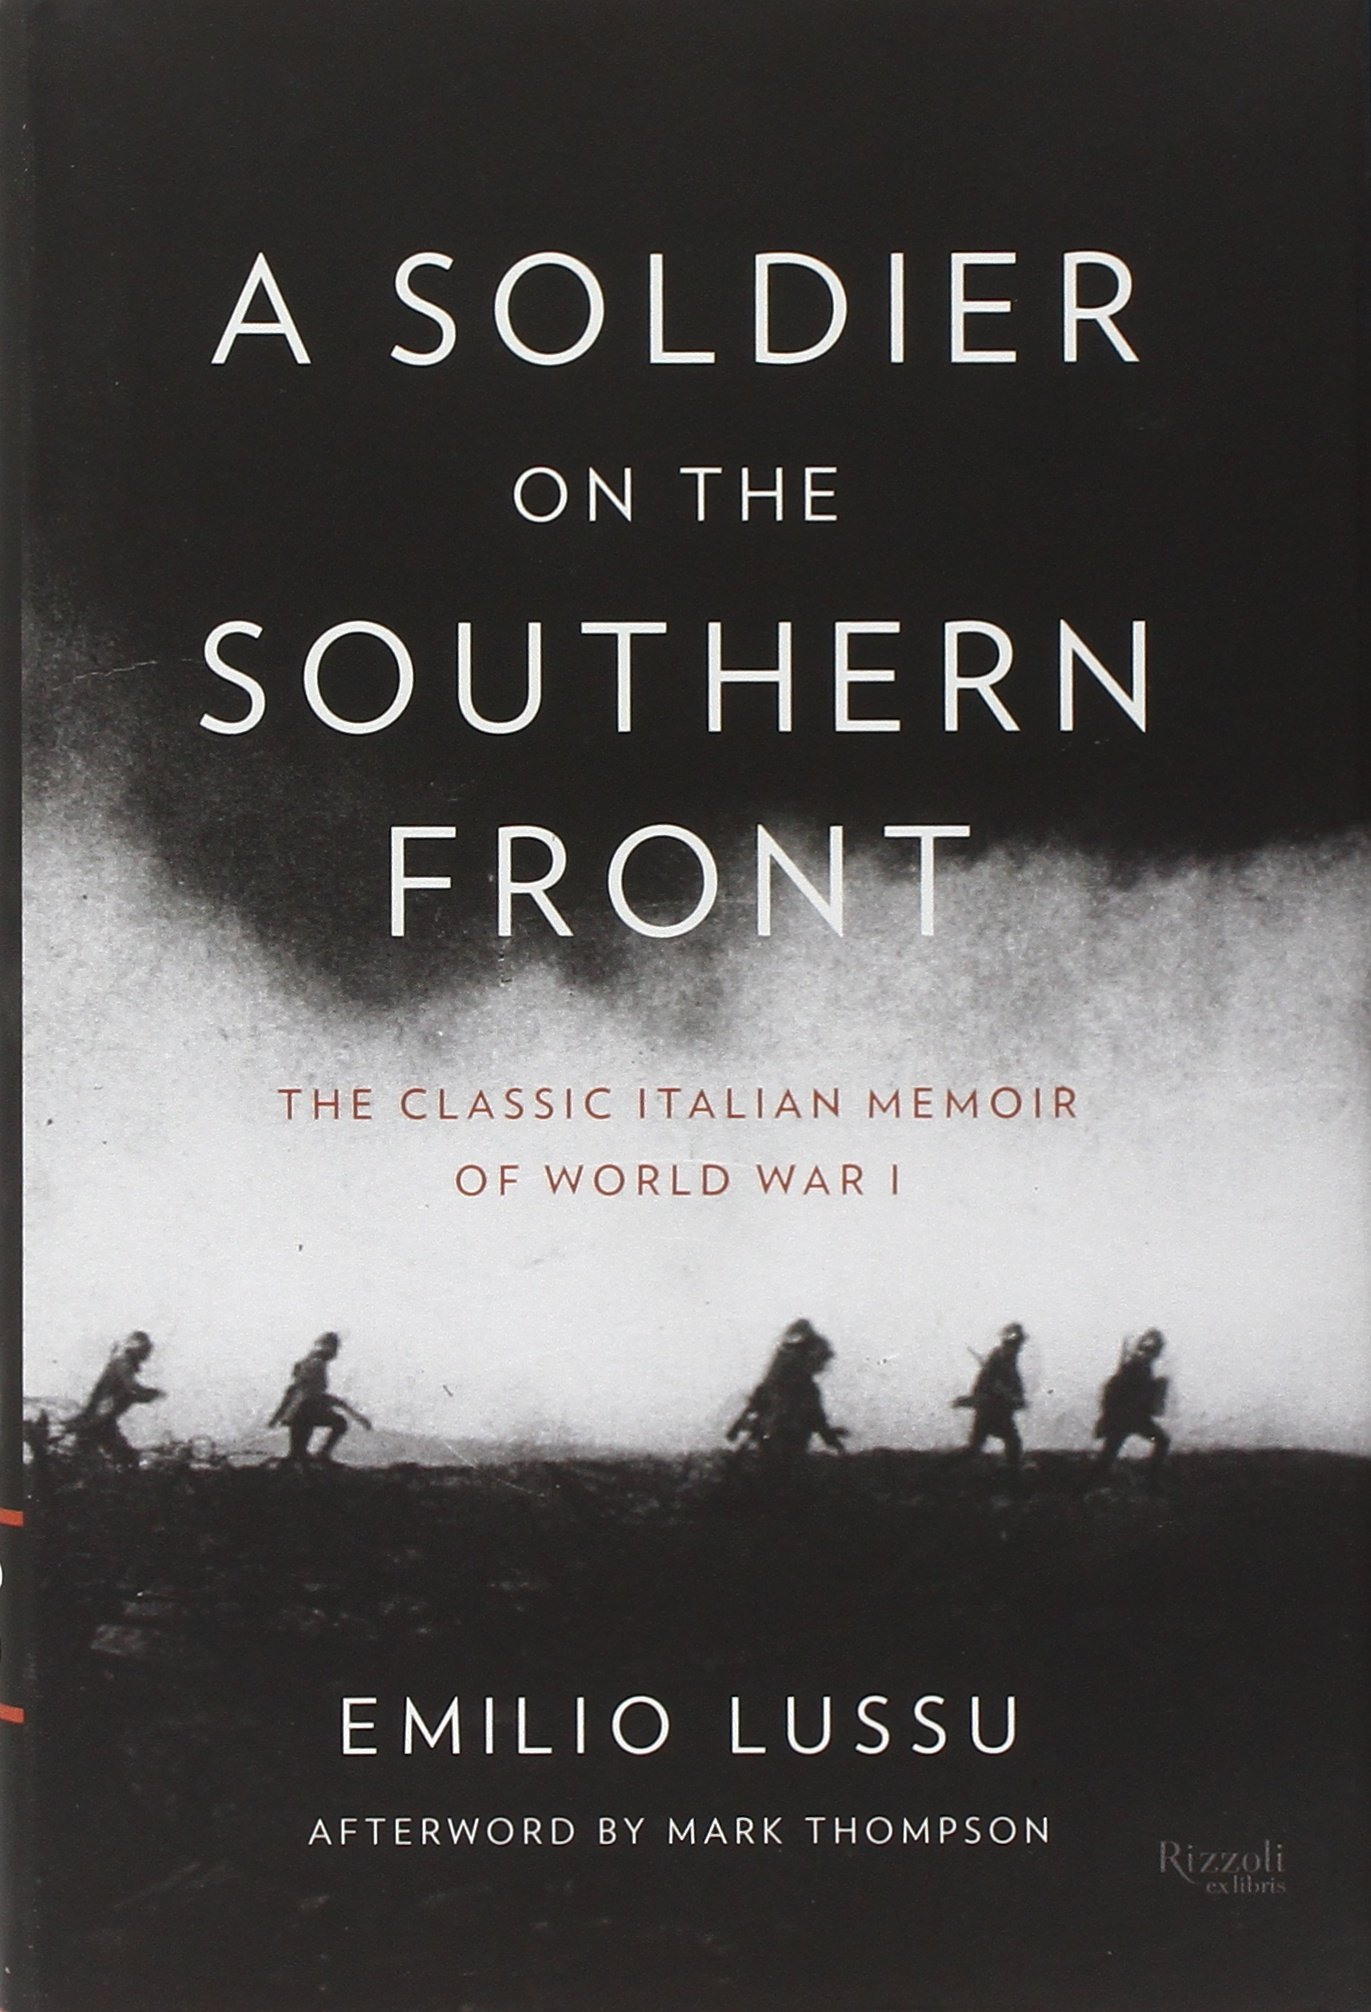 A Soldier On The Southern Front: The Classic Italian Memoir Of World War I:  Amazon: Emilio Lussu: 9780847842780: Books